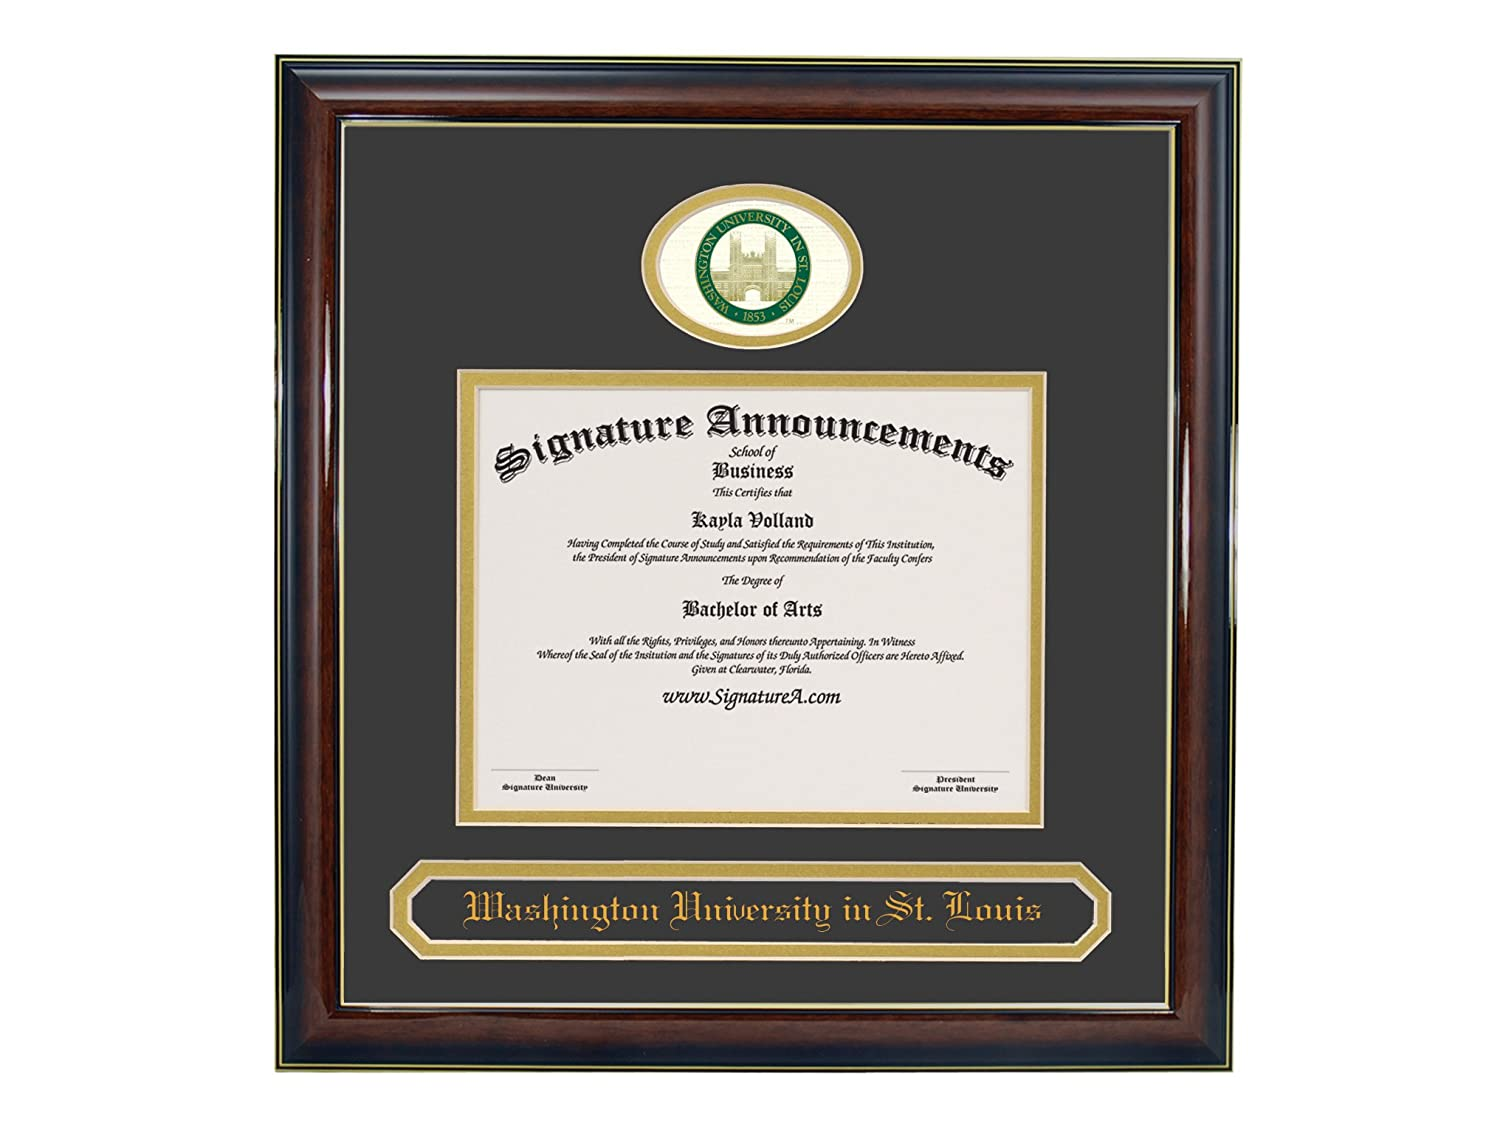 Signature Announcements Washington-University-in-St-Louis Undergraduate Professional//Doctor Sculpted Foil Seal /& Name Graduation Diploma Frame 16 x 16 Gloss Mahogany with Gold Accent